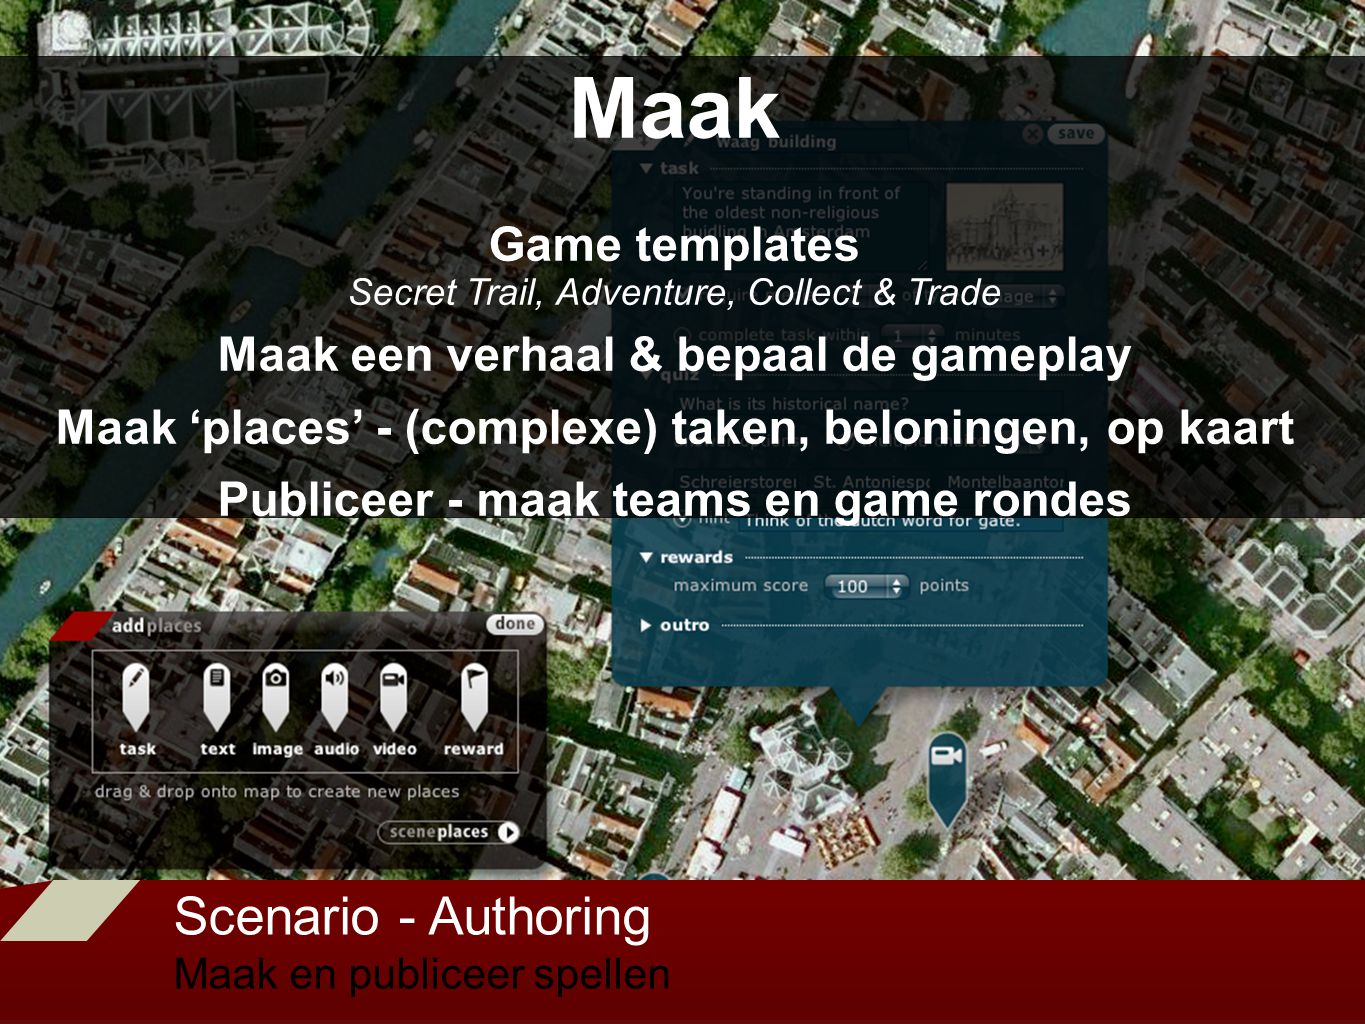 Scenario - Authoring Maak en publiceer spellen Maak Game templates Secret Trail, Adventure, Collect & Trade Maak een verhaal & bepaal de gameplay Maak